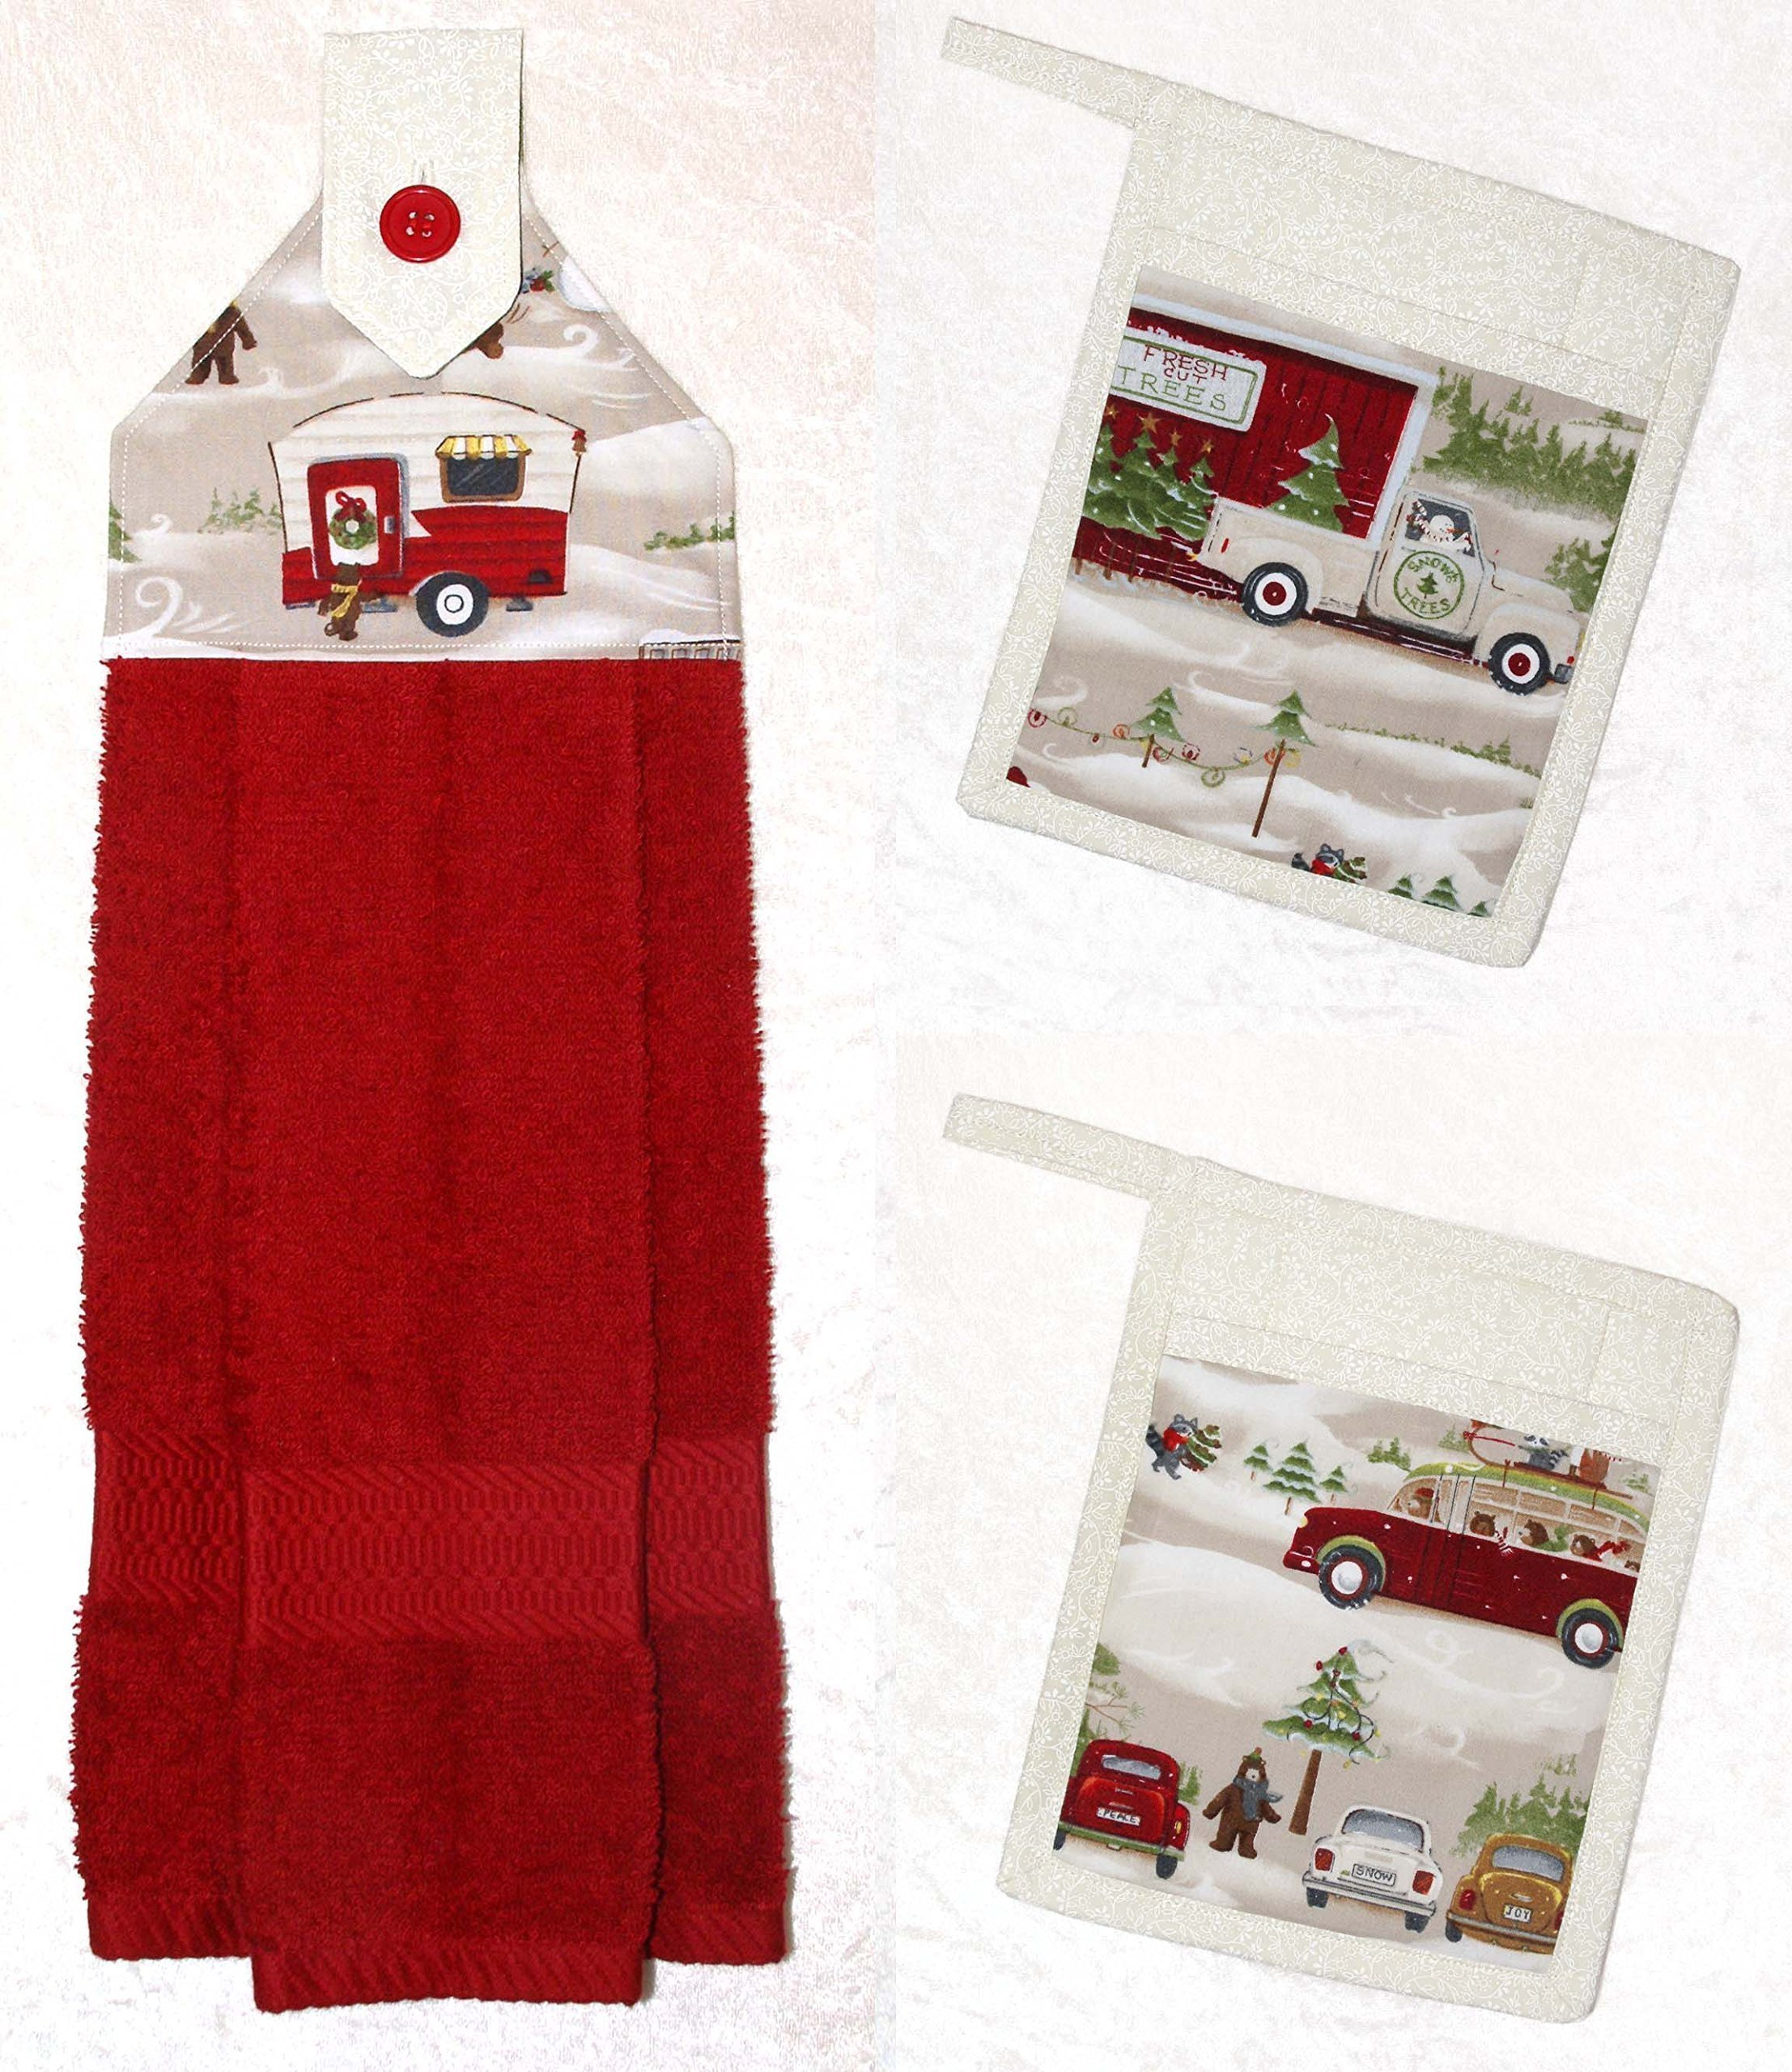 3 Piece RV Camping Decor - 1 Hanging Hand Towel - 2 Pocket Potholders - Vintage Christmas Scenes by Green Acorn Kitchen